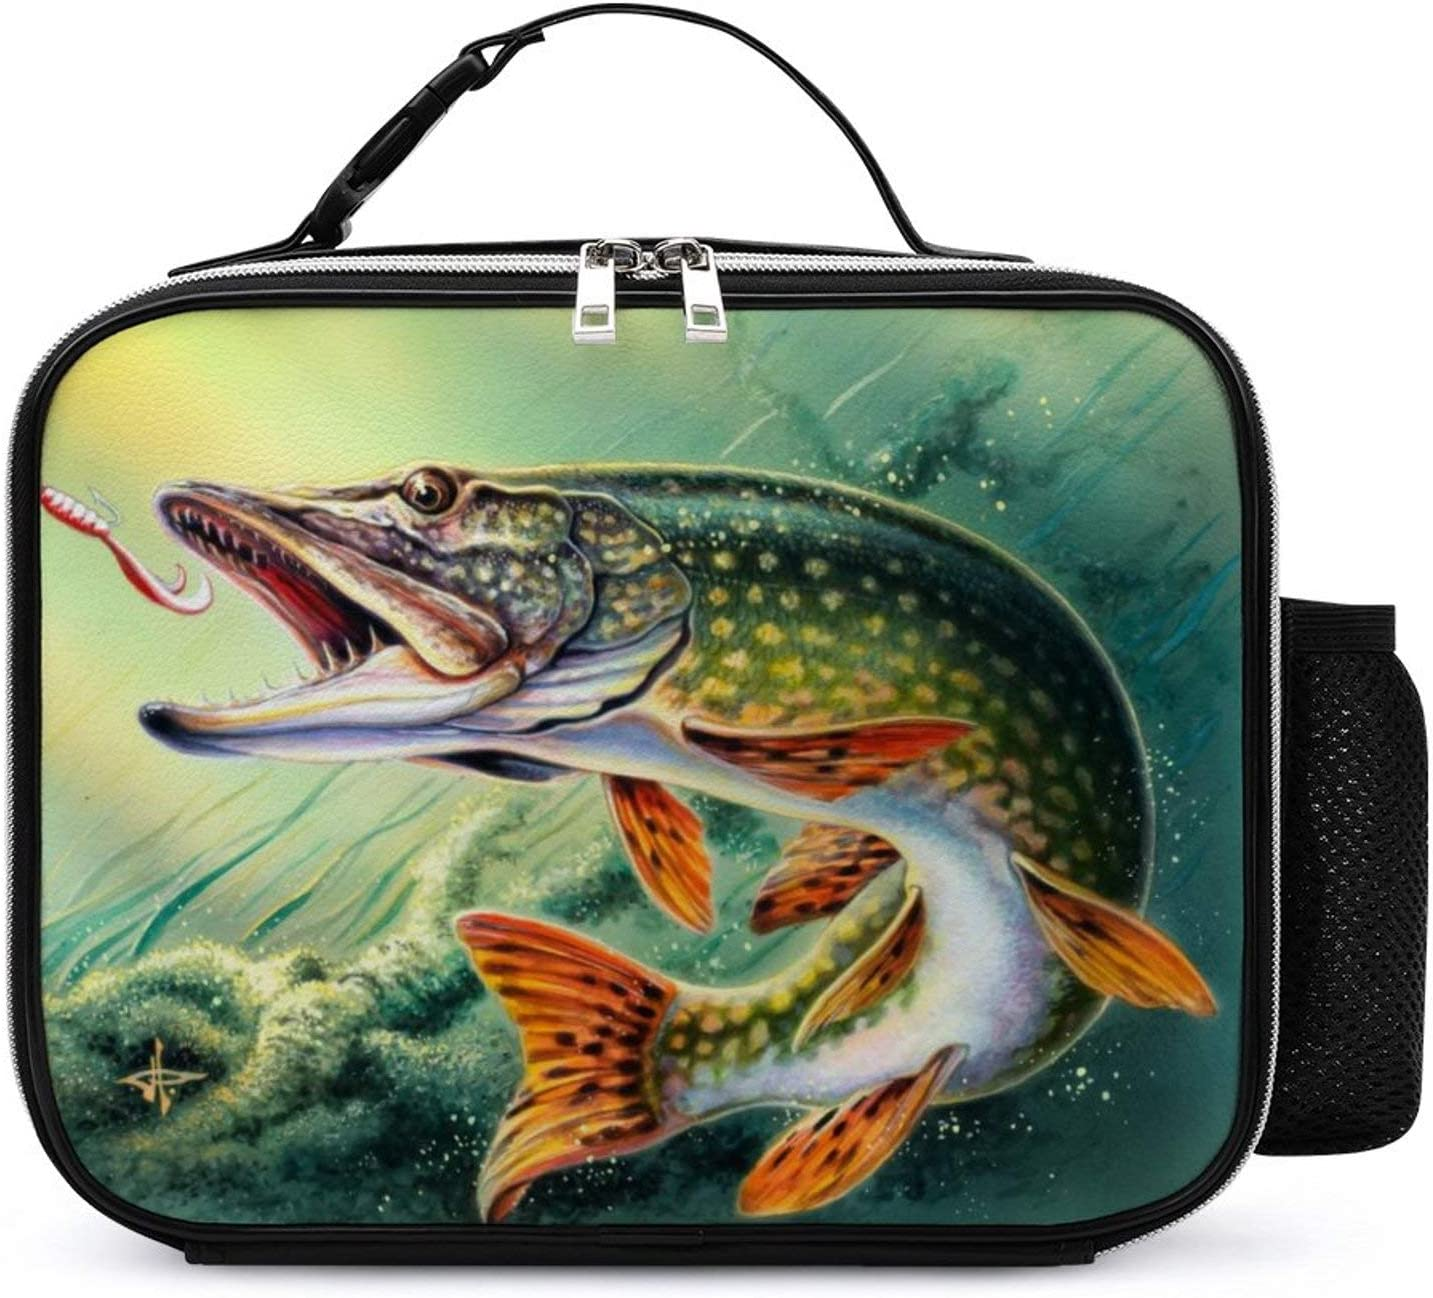 Pike Fish Fishing shop Ranking TOP12 Lure Lunch Box with Padded Ins Spacious Liner